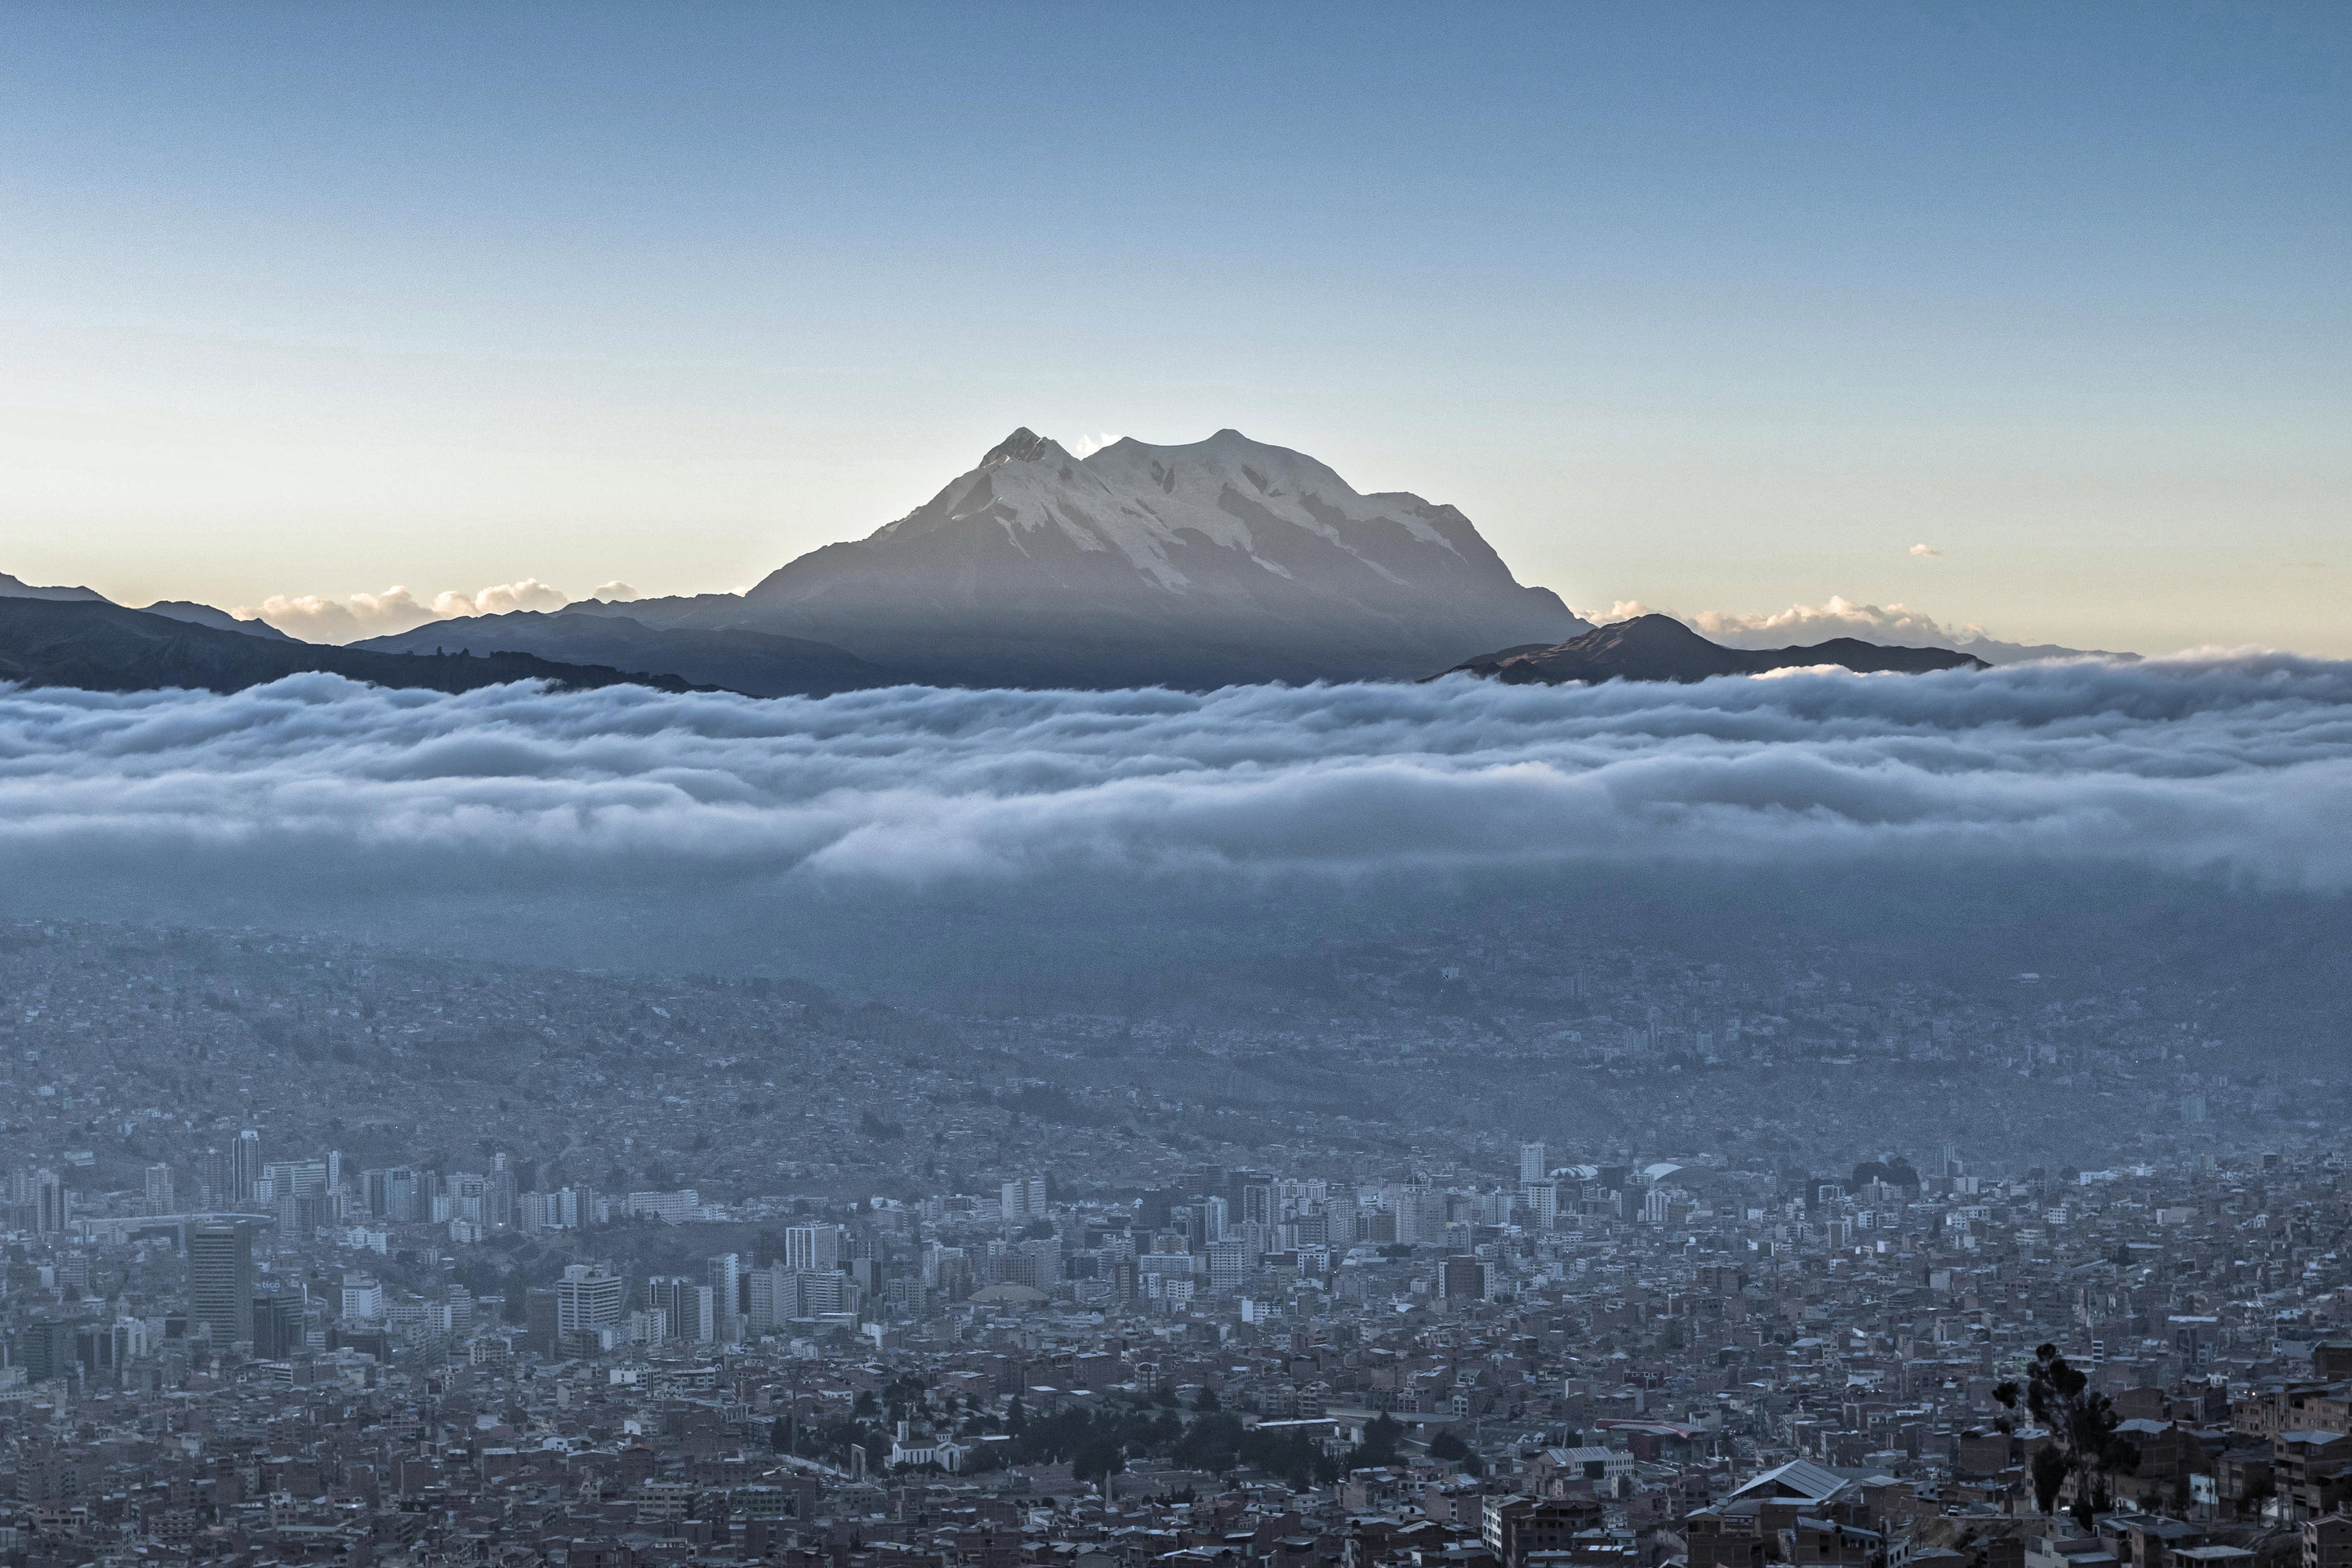 Megacity traffic soot also contributes to the global warming